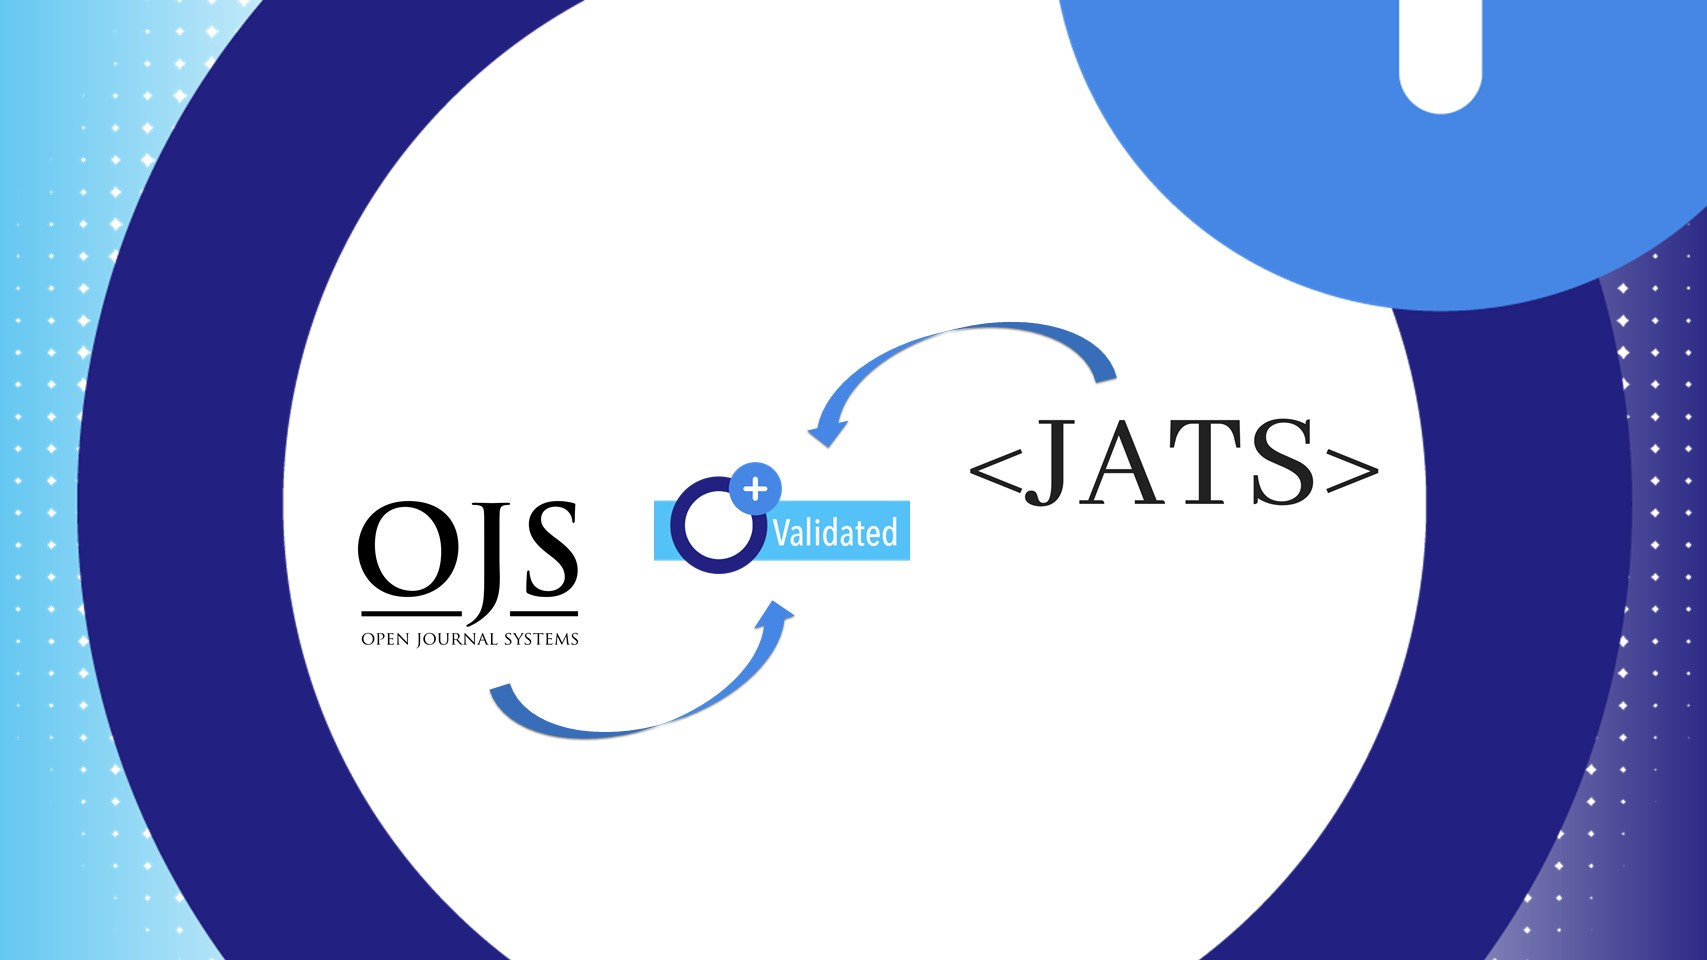 Open Journal Systems (OJS) sets new standards to achieve OpenAIRE compliance with JATS